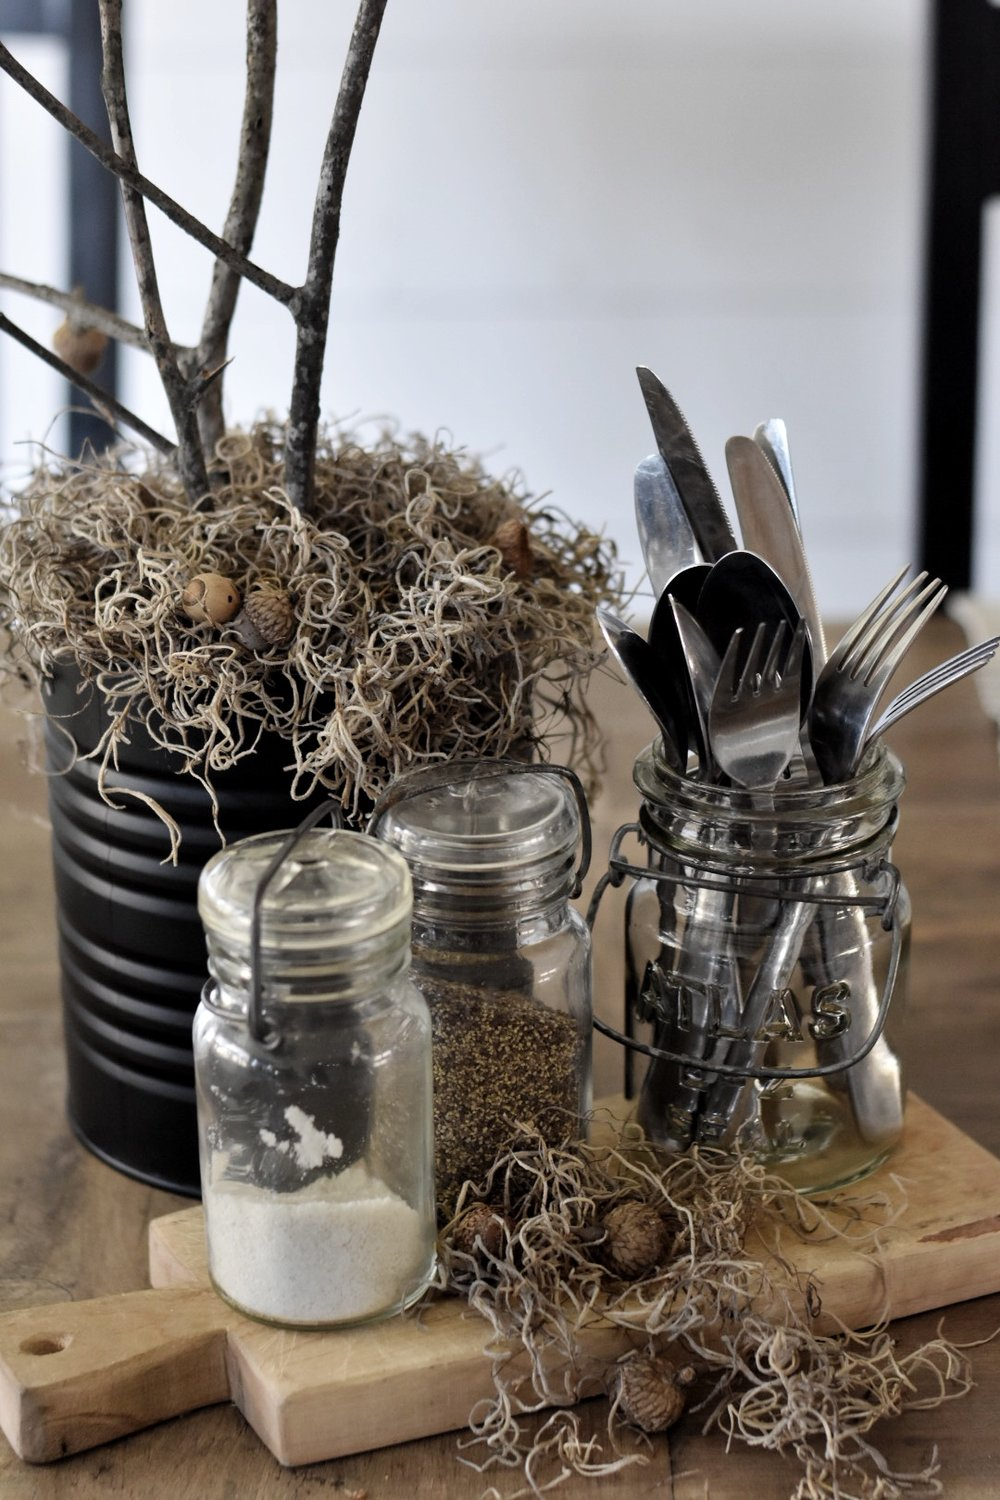 Rocky Hedge Farm - Rustic Nature Inspired Fall Centerpiece